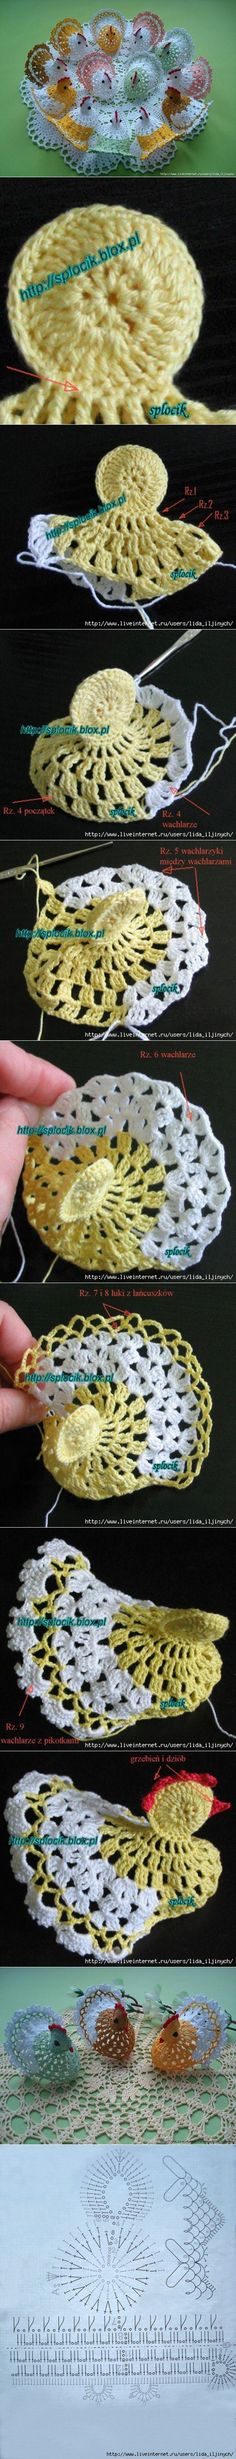 crochet chick tutorial